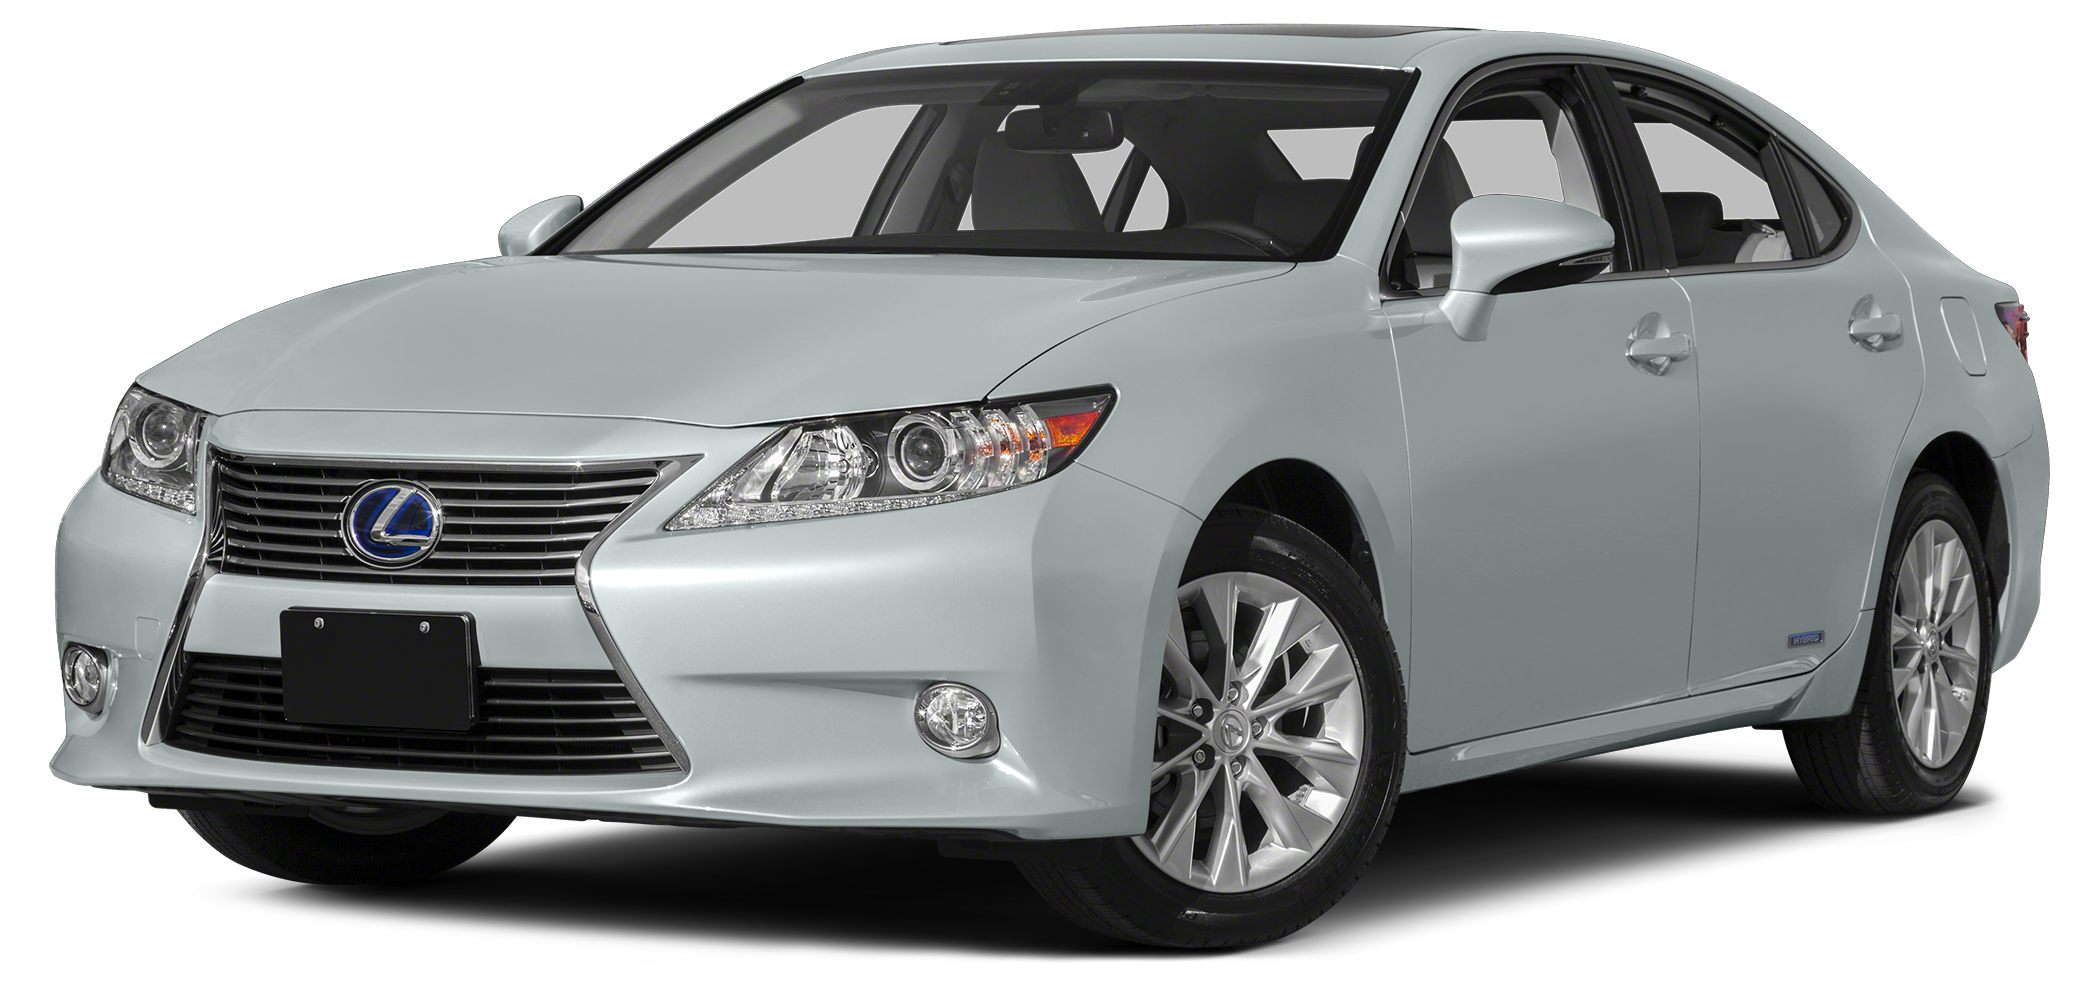 2014 Lexus ES 300h Base THIS ONE IS WORTH THE WAIT SHOULD BE AVAILABLE MID MARCH MONTH WE KNOW ON